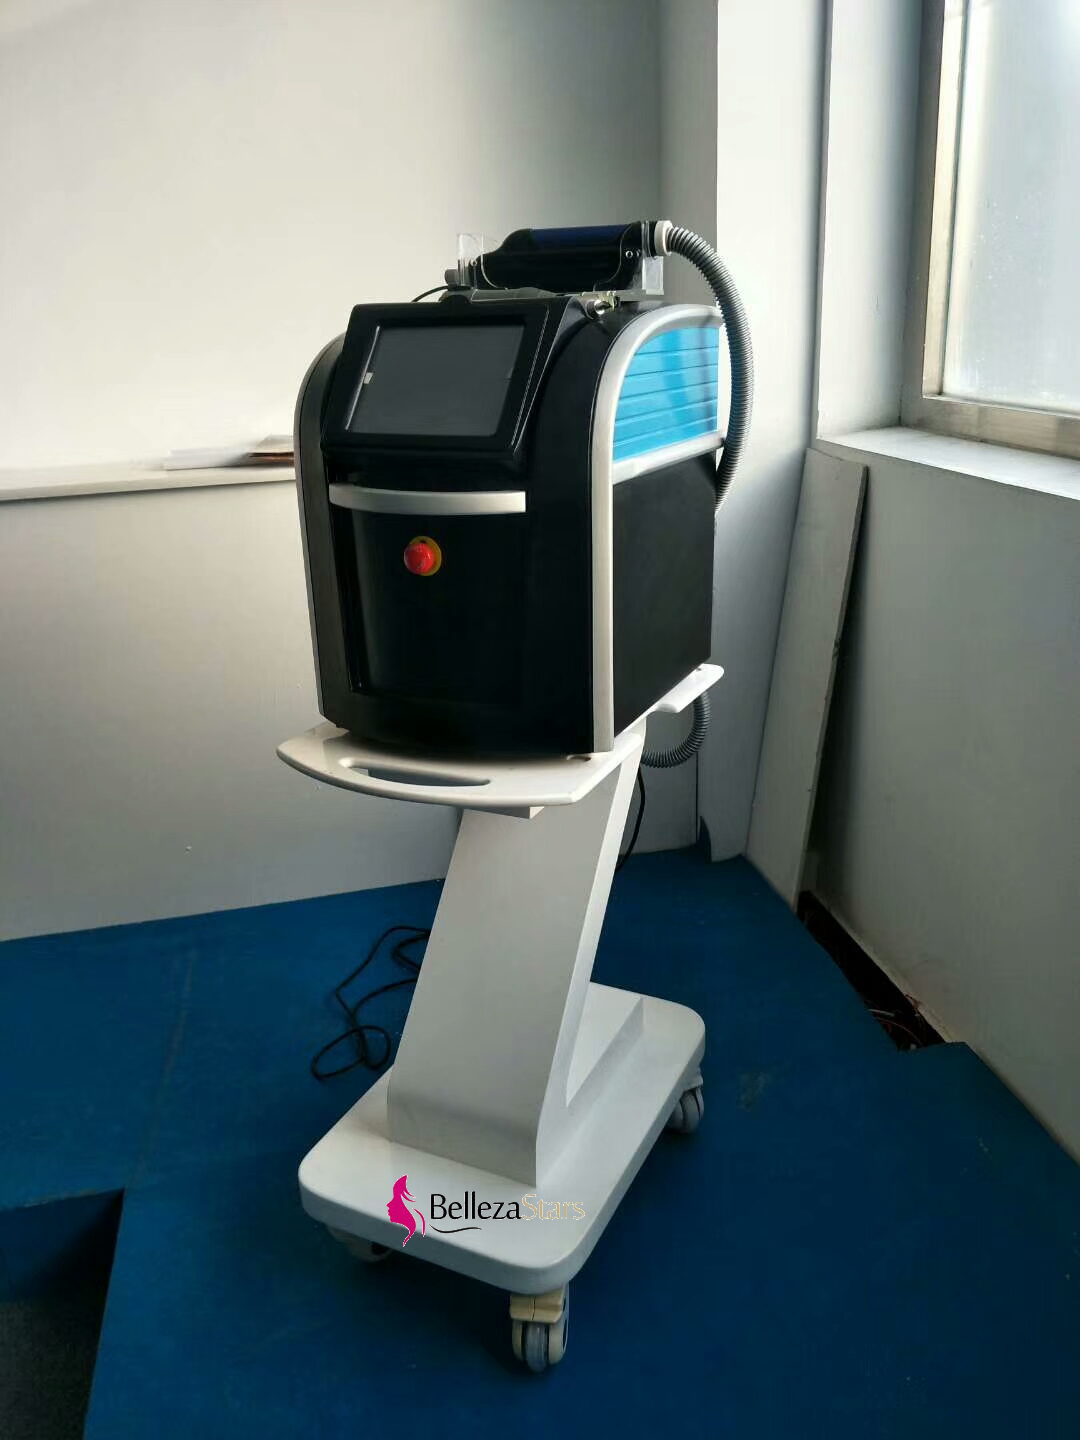 Picosecond Laser Machine Bls002 Beauty Machine Supplier